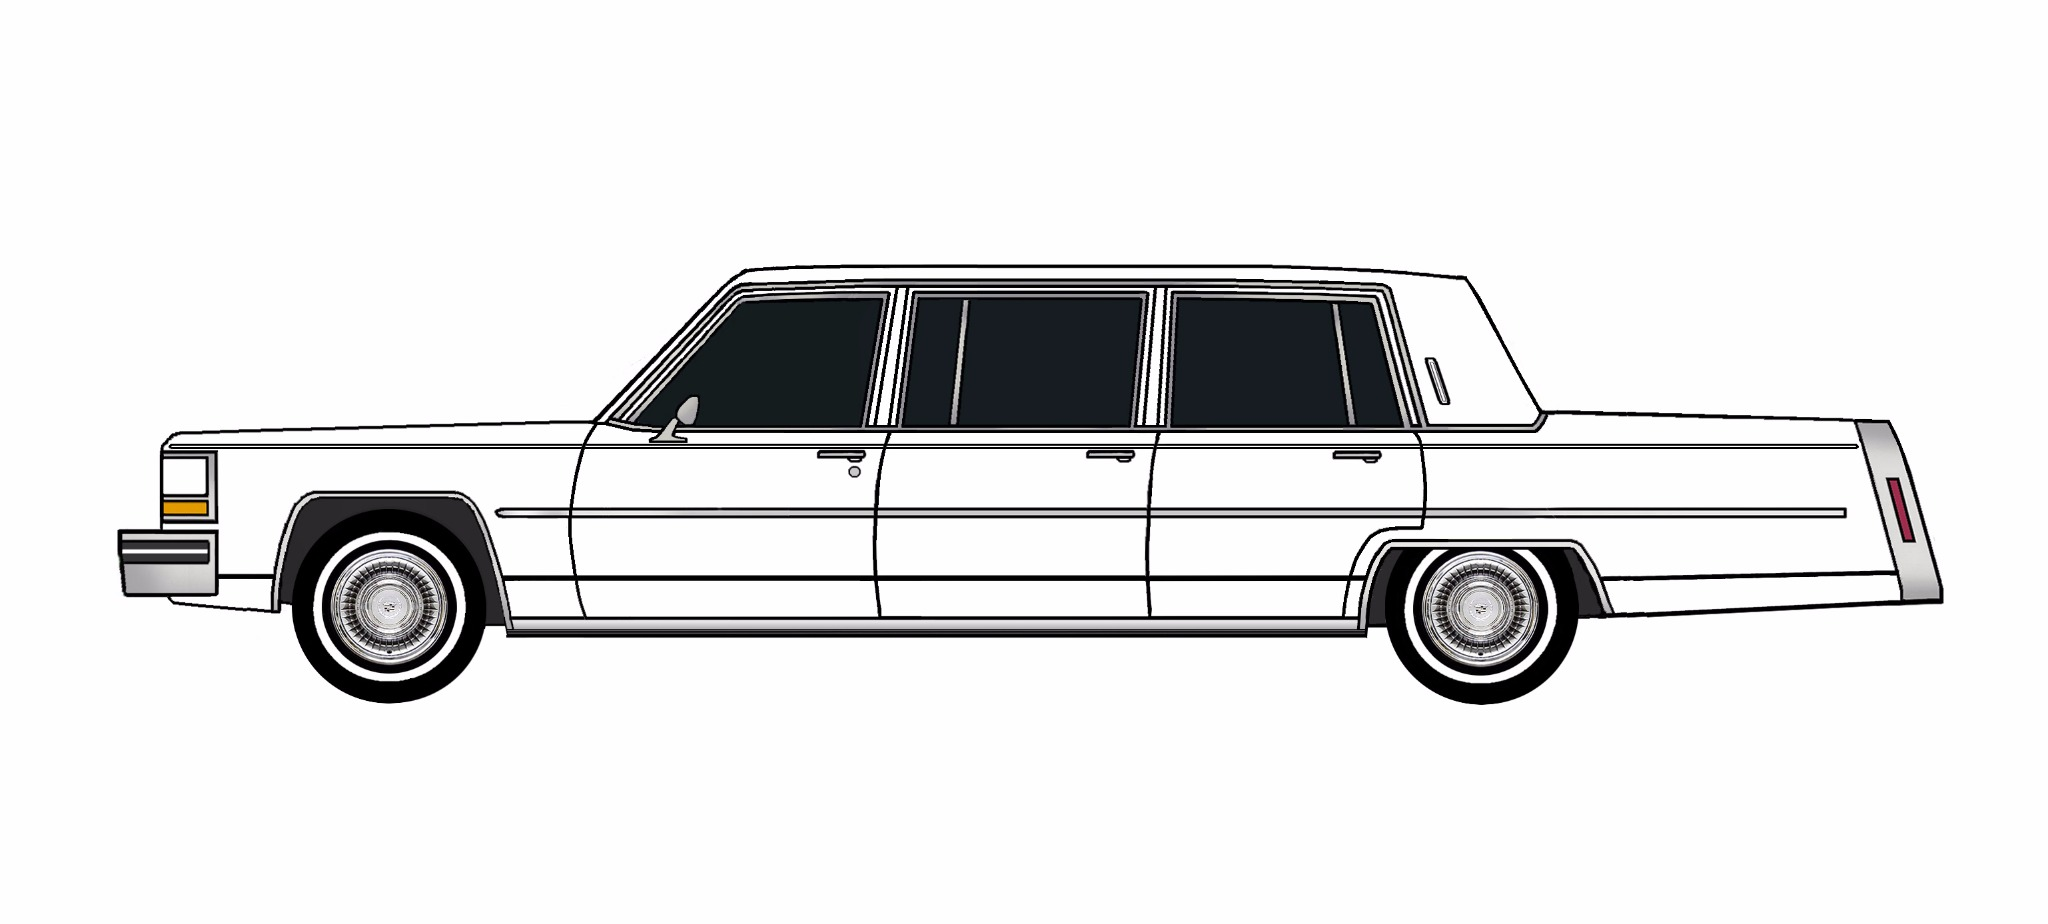 1980 Cadillac Fleetwood Funeral Limo WHITE